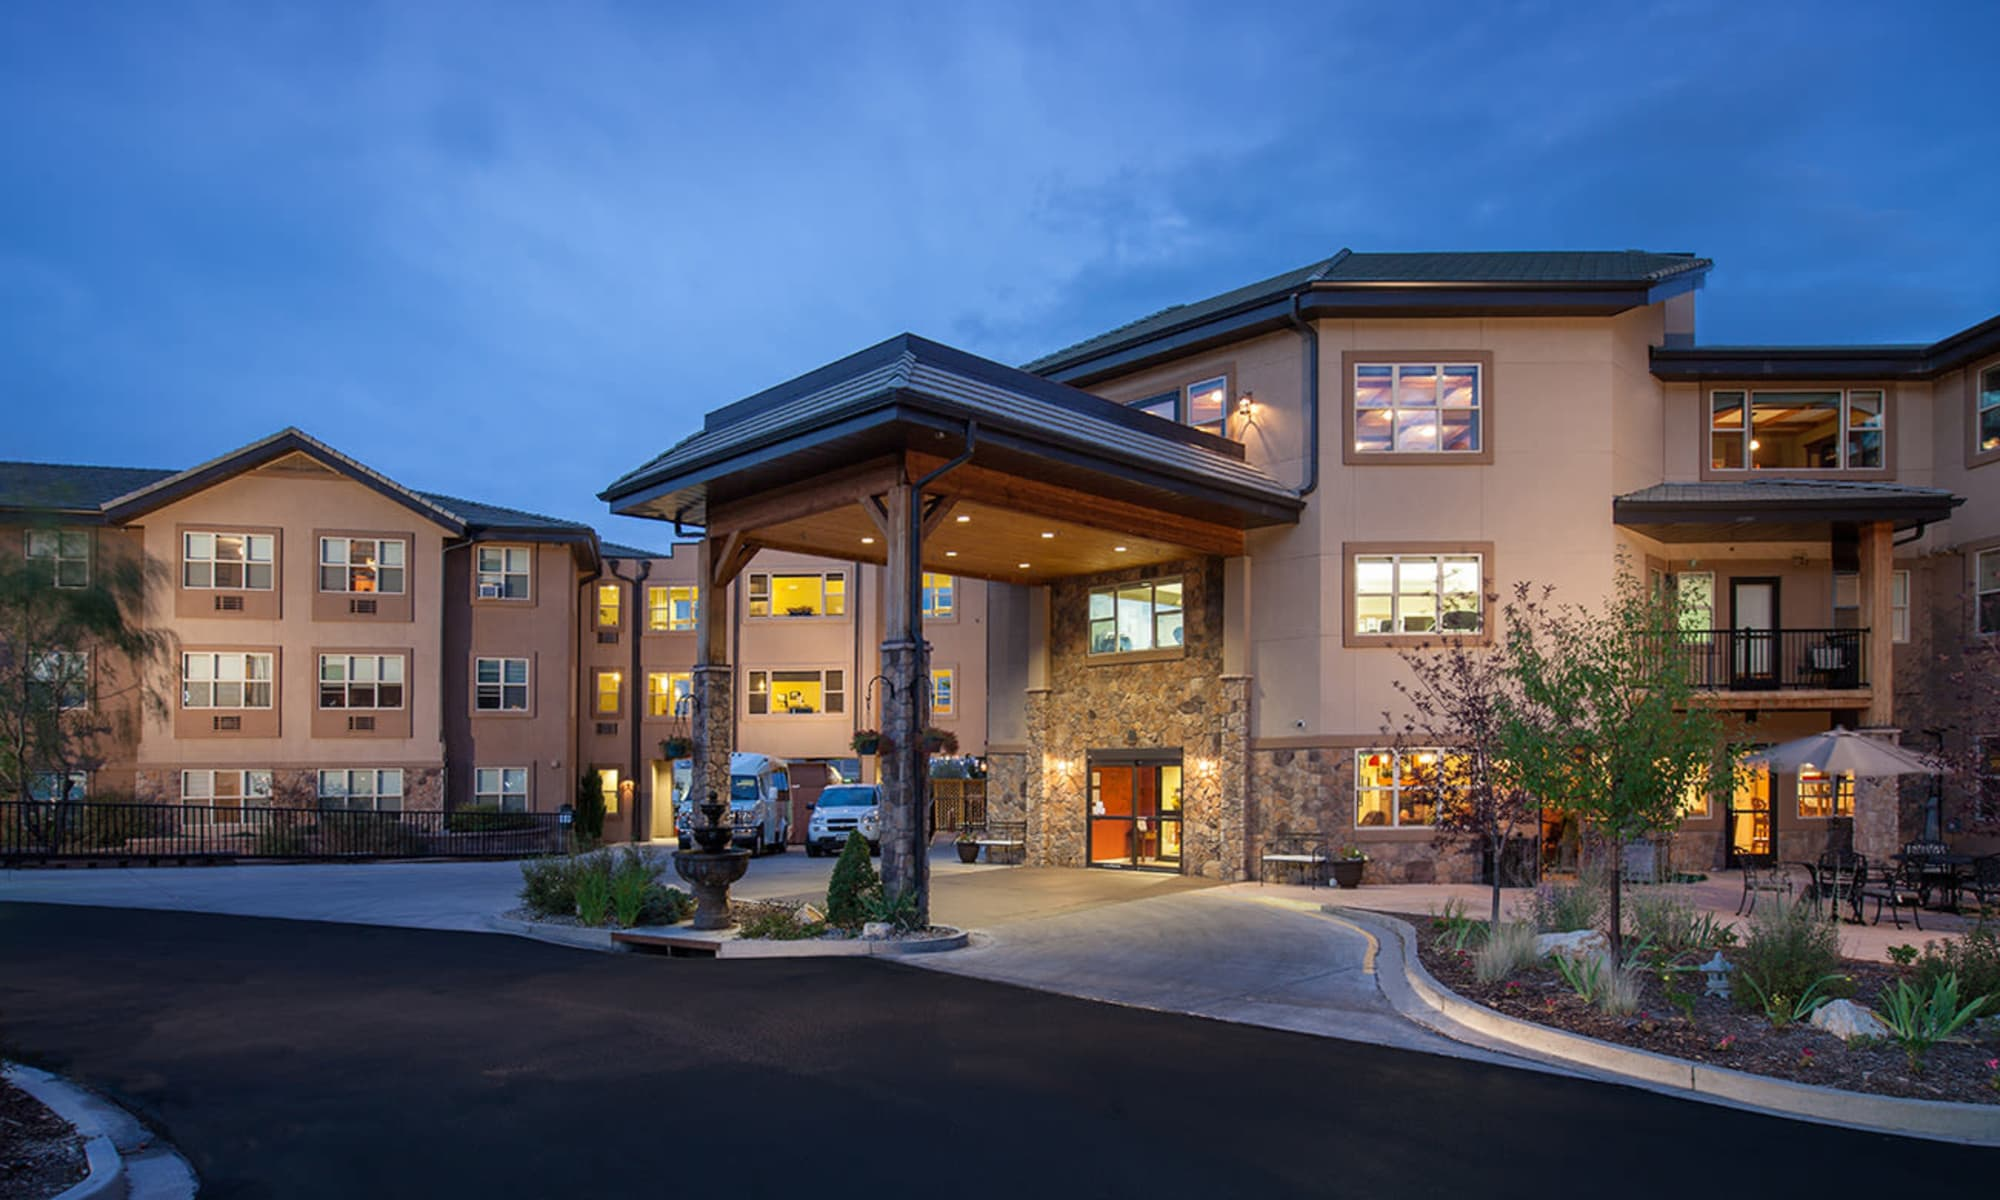 Senior Living Center | The Palisades at Broadmoor Park in Colorado Springs, Colorado